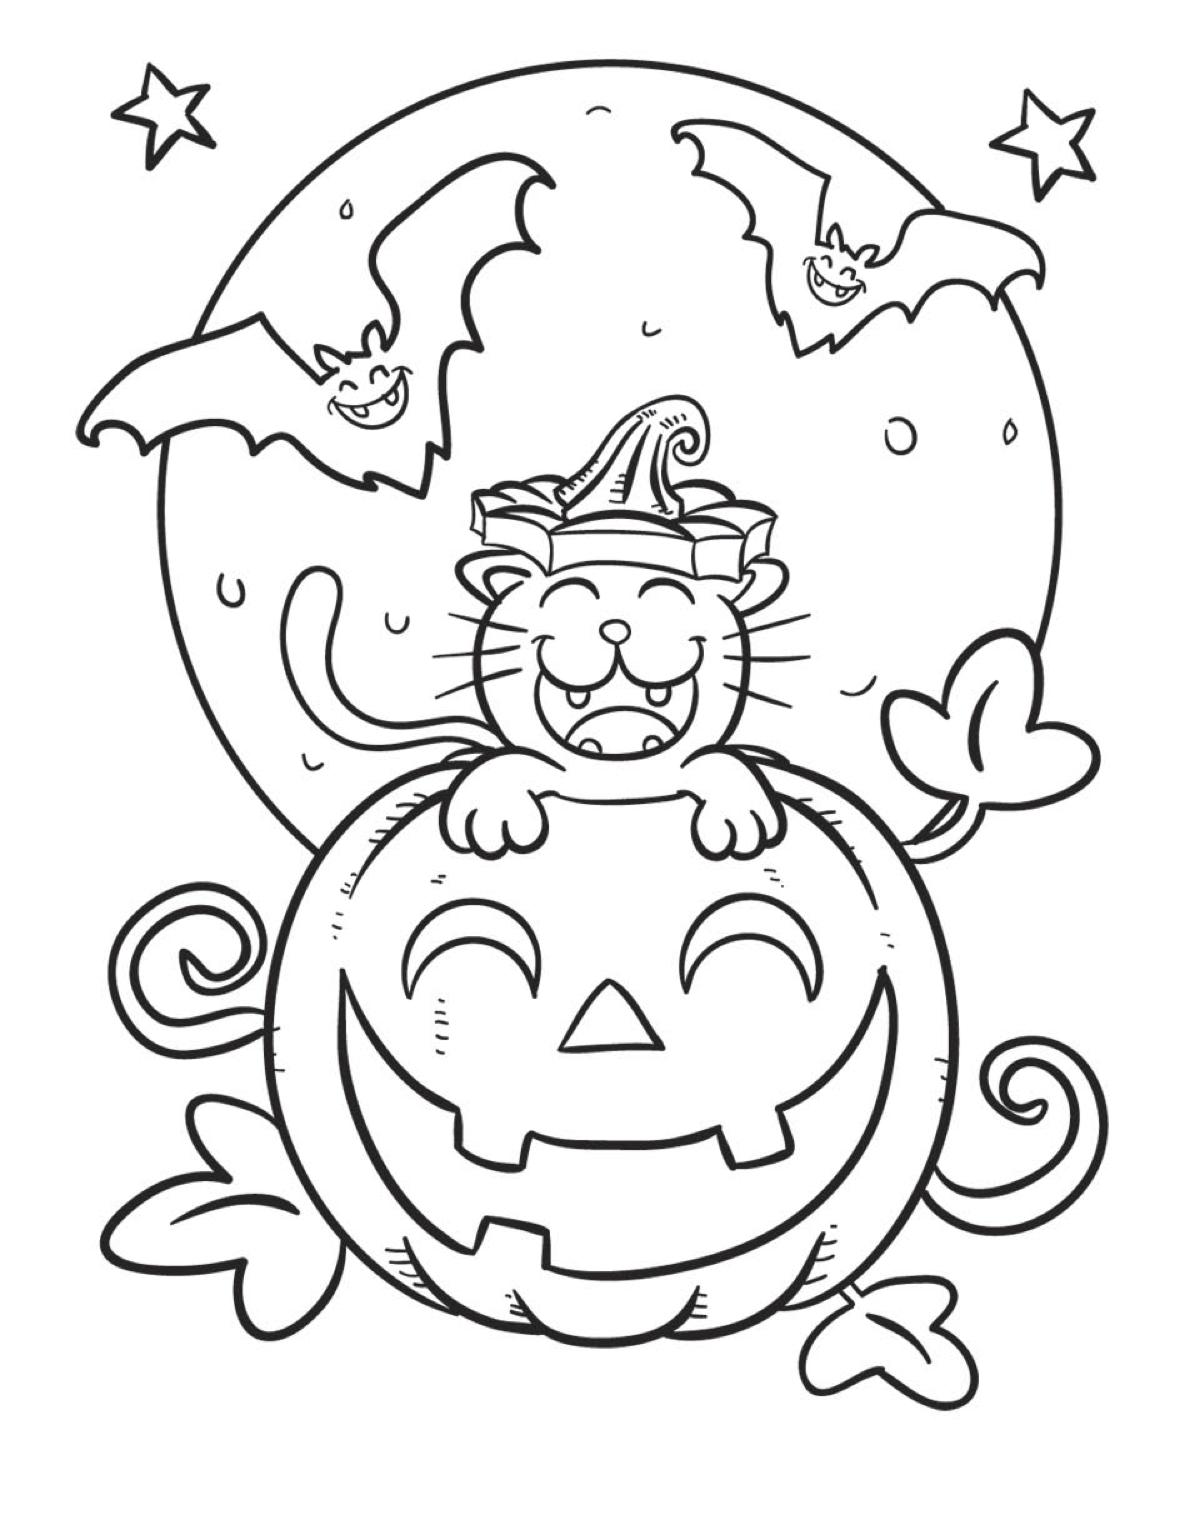 1st grade halloween coloring pages photo - 1